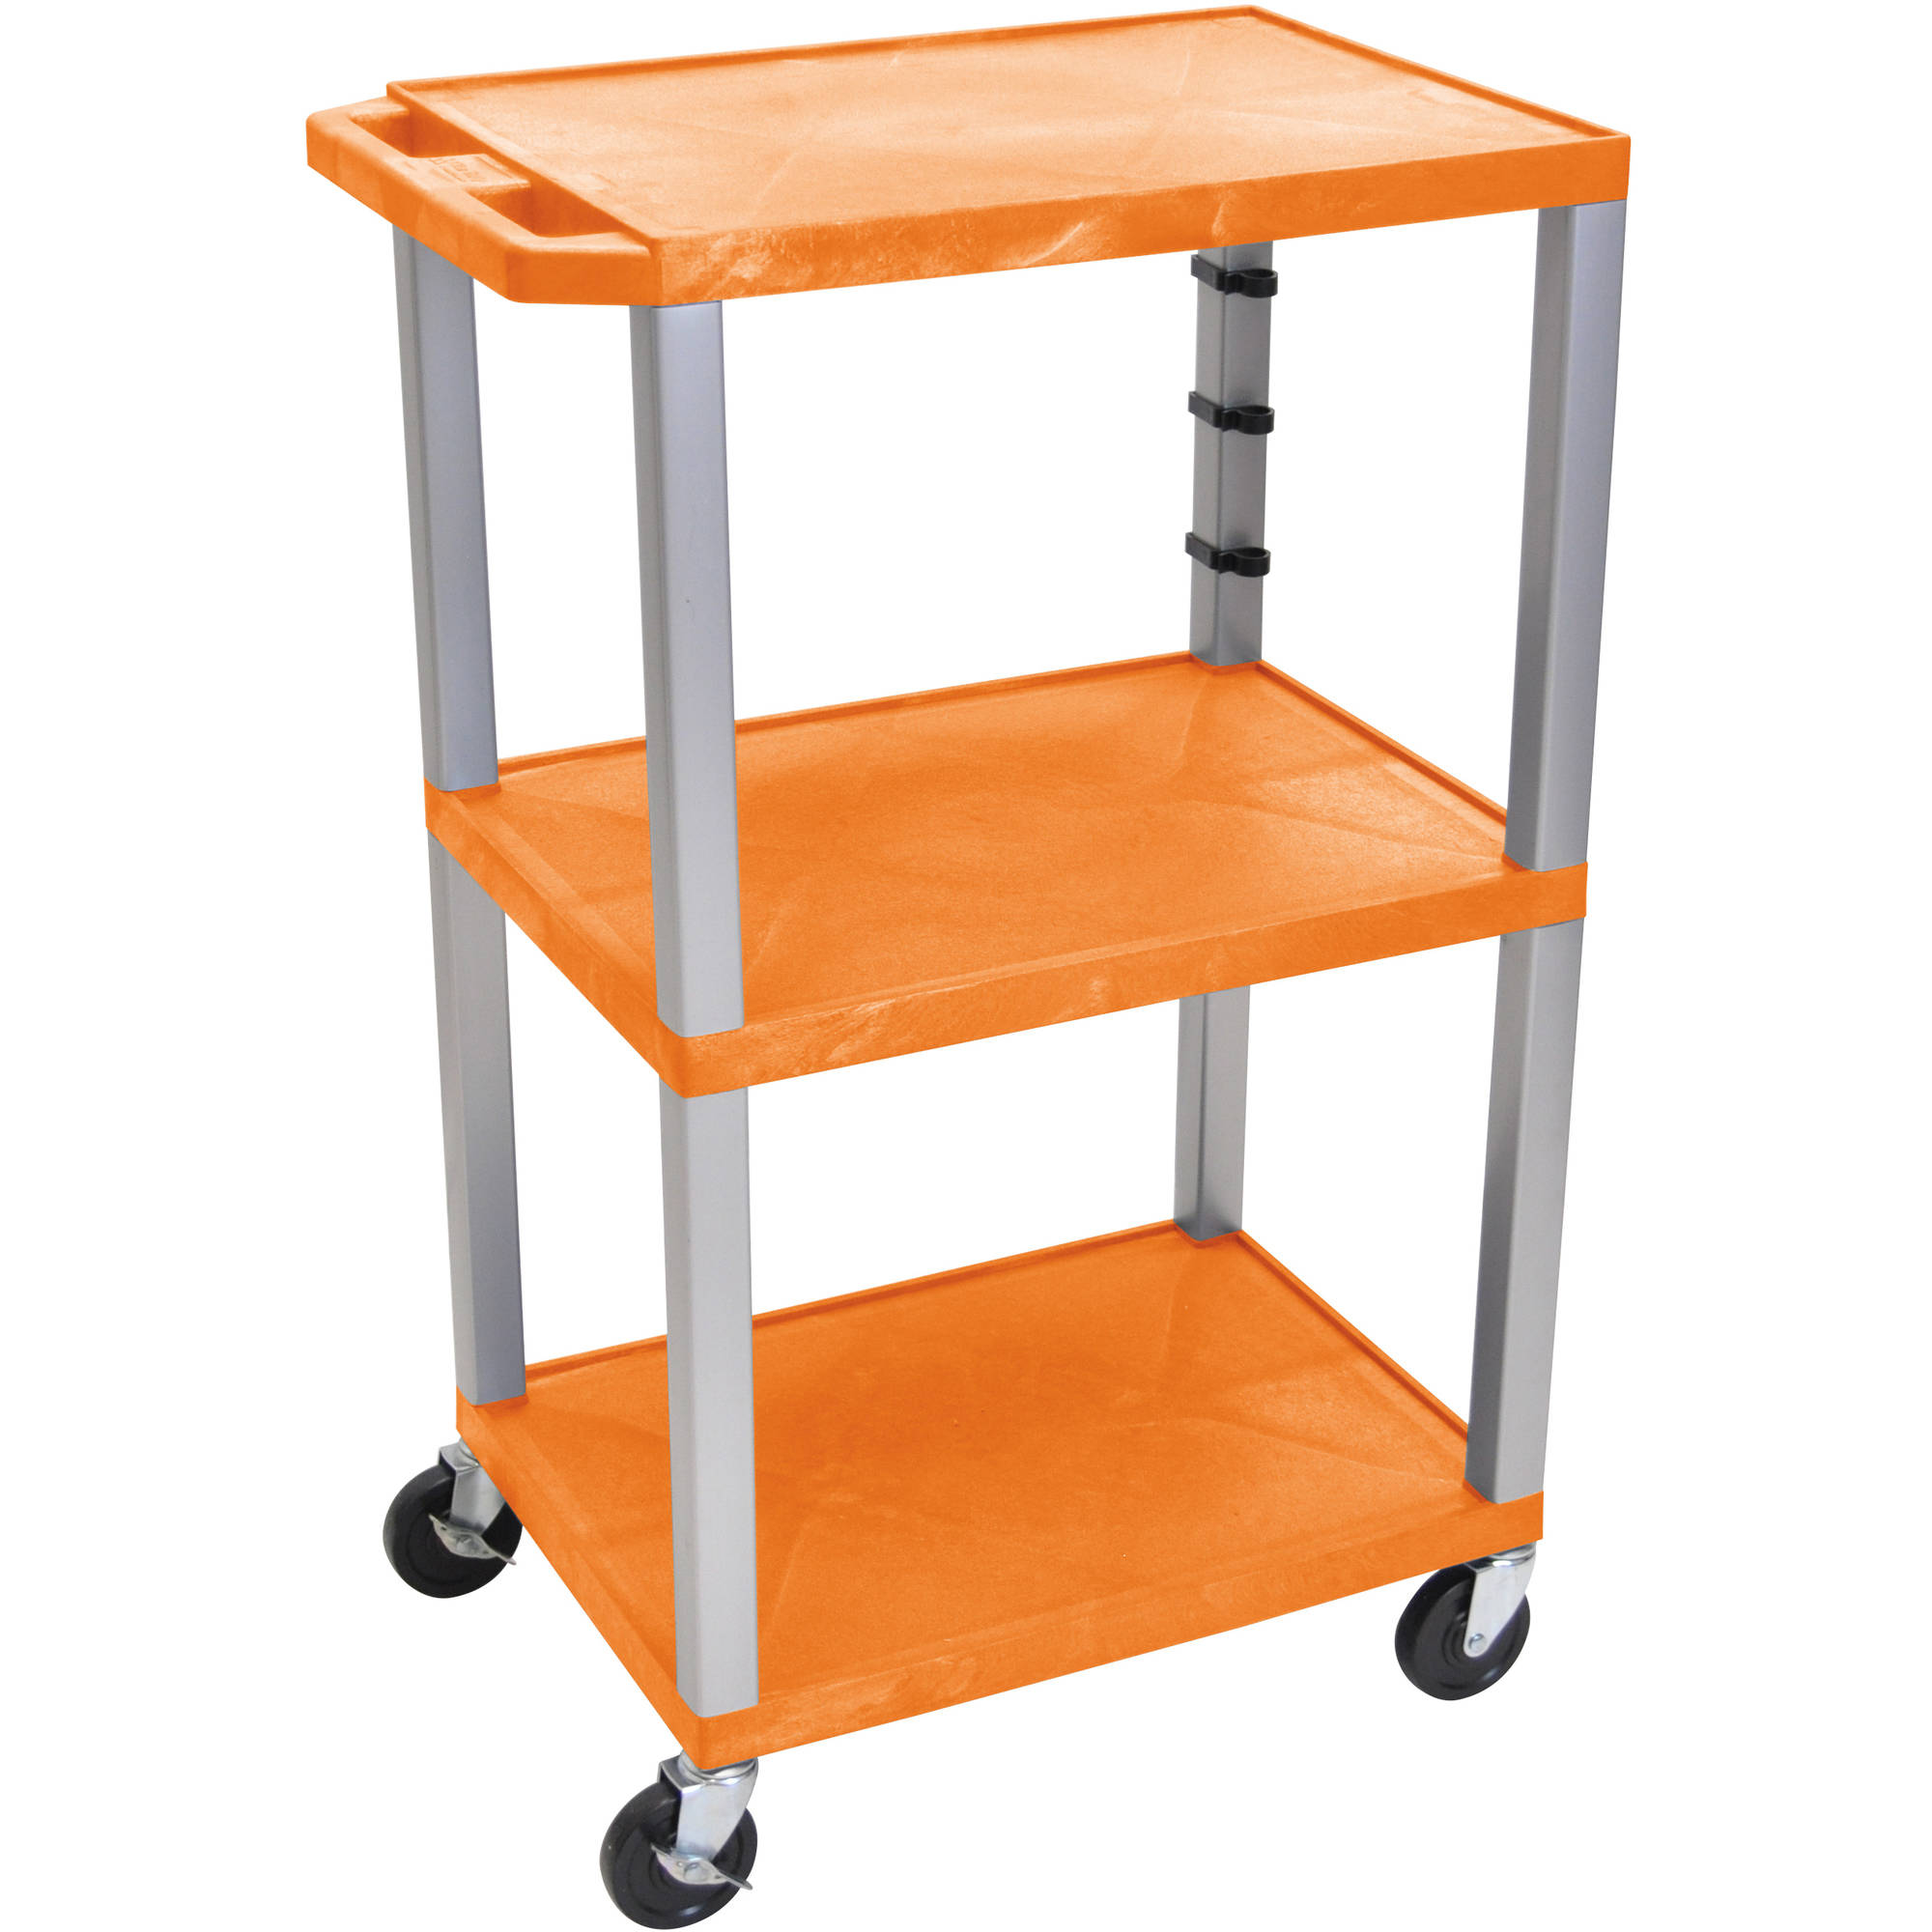 H. Wilson Tuffy 3-Shelf A/V Cart with Electric, Orange Shelves and Nickel Legs